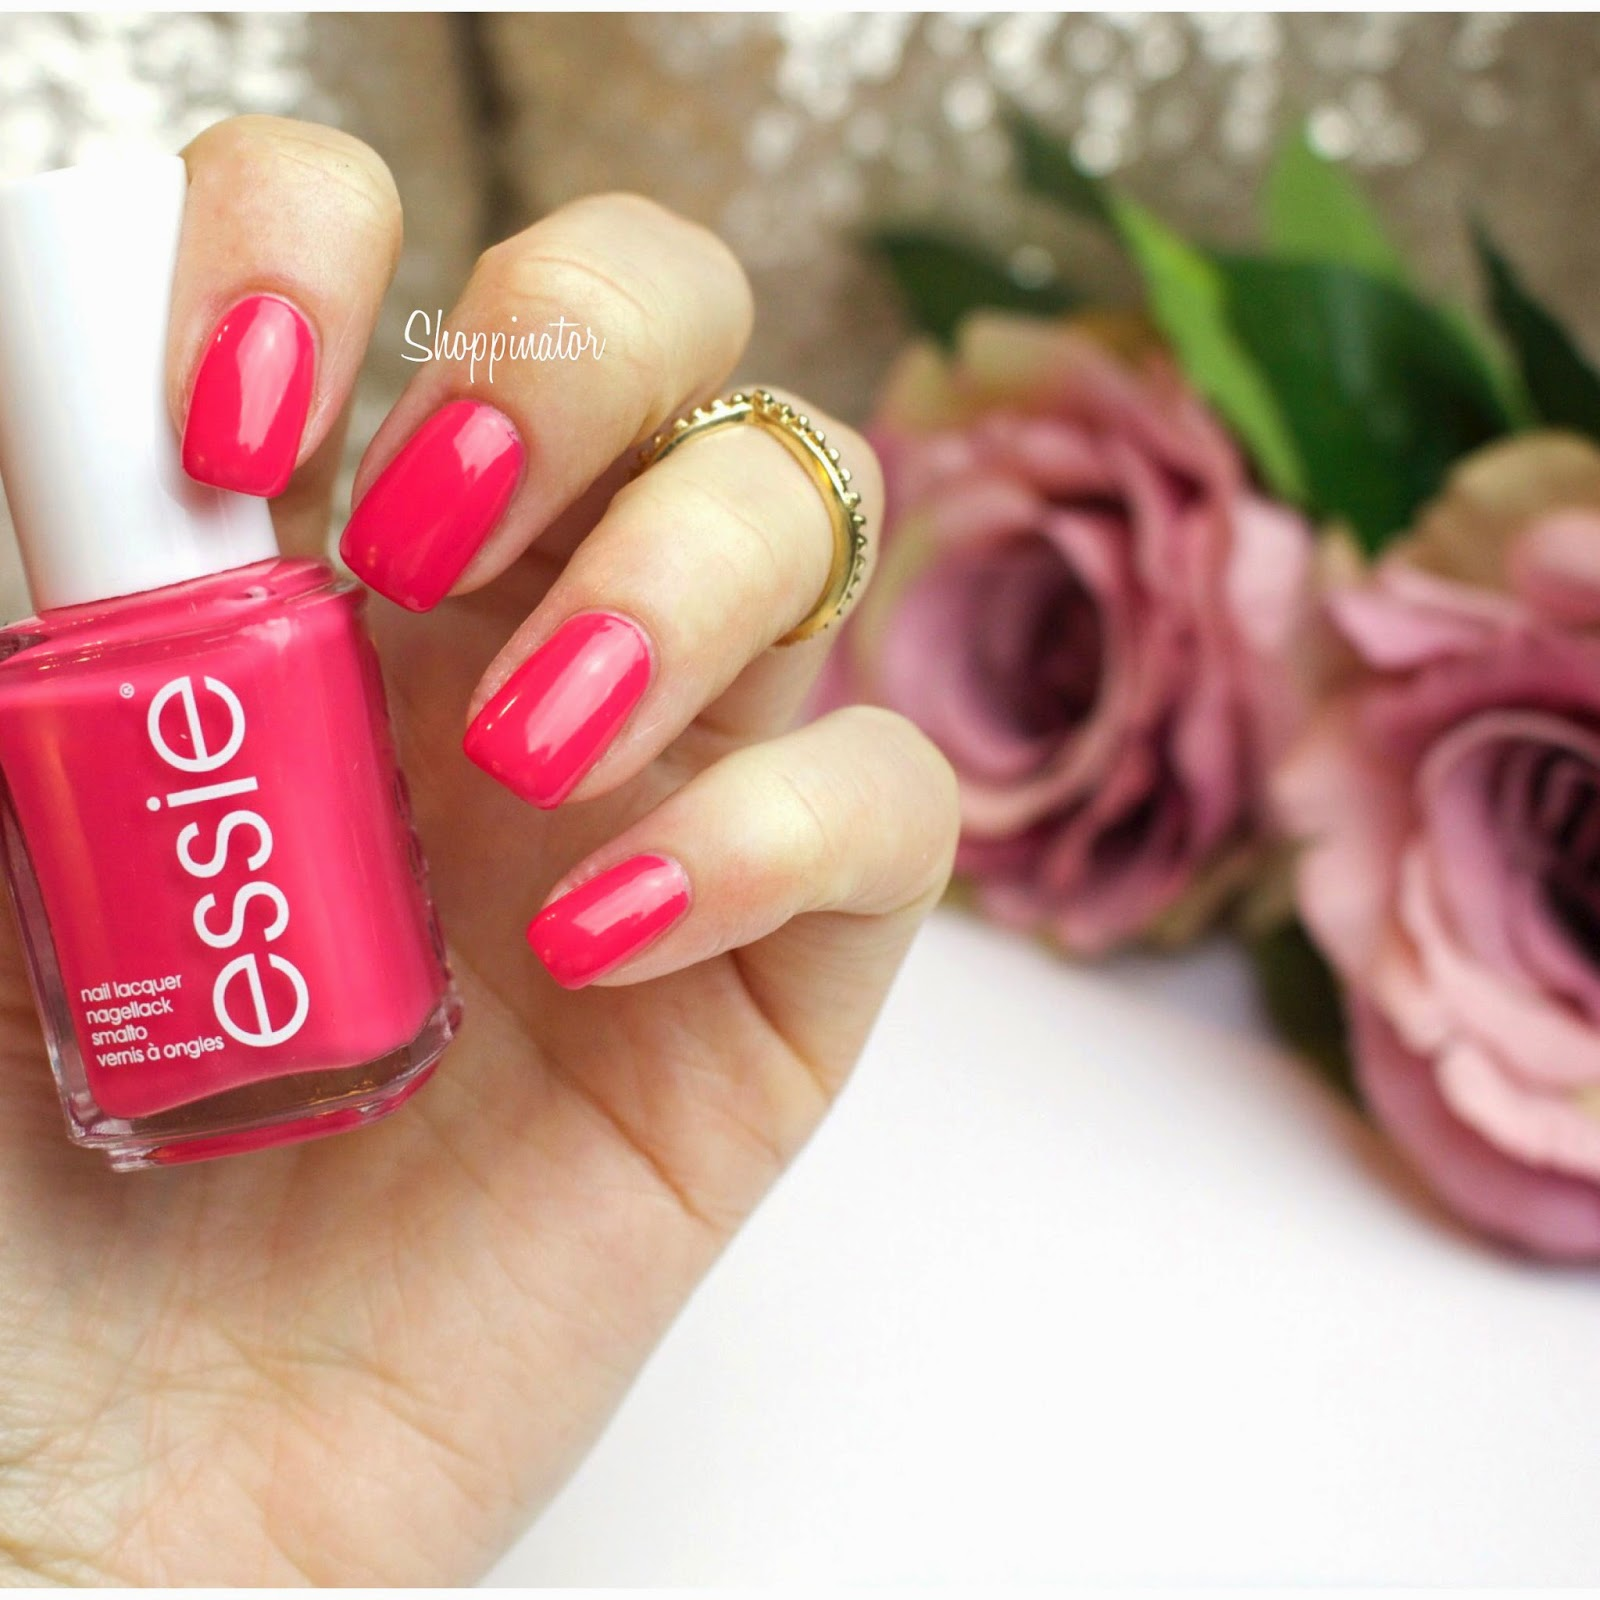 Essie-Status-Symbol-Swatch-Shoppinator-Pink-Standardsortiment-Verlässt-das